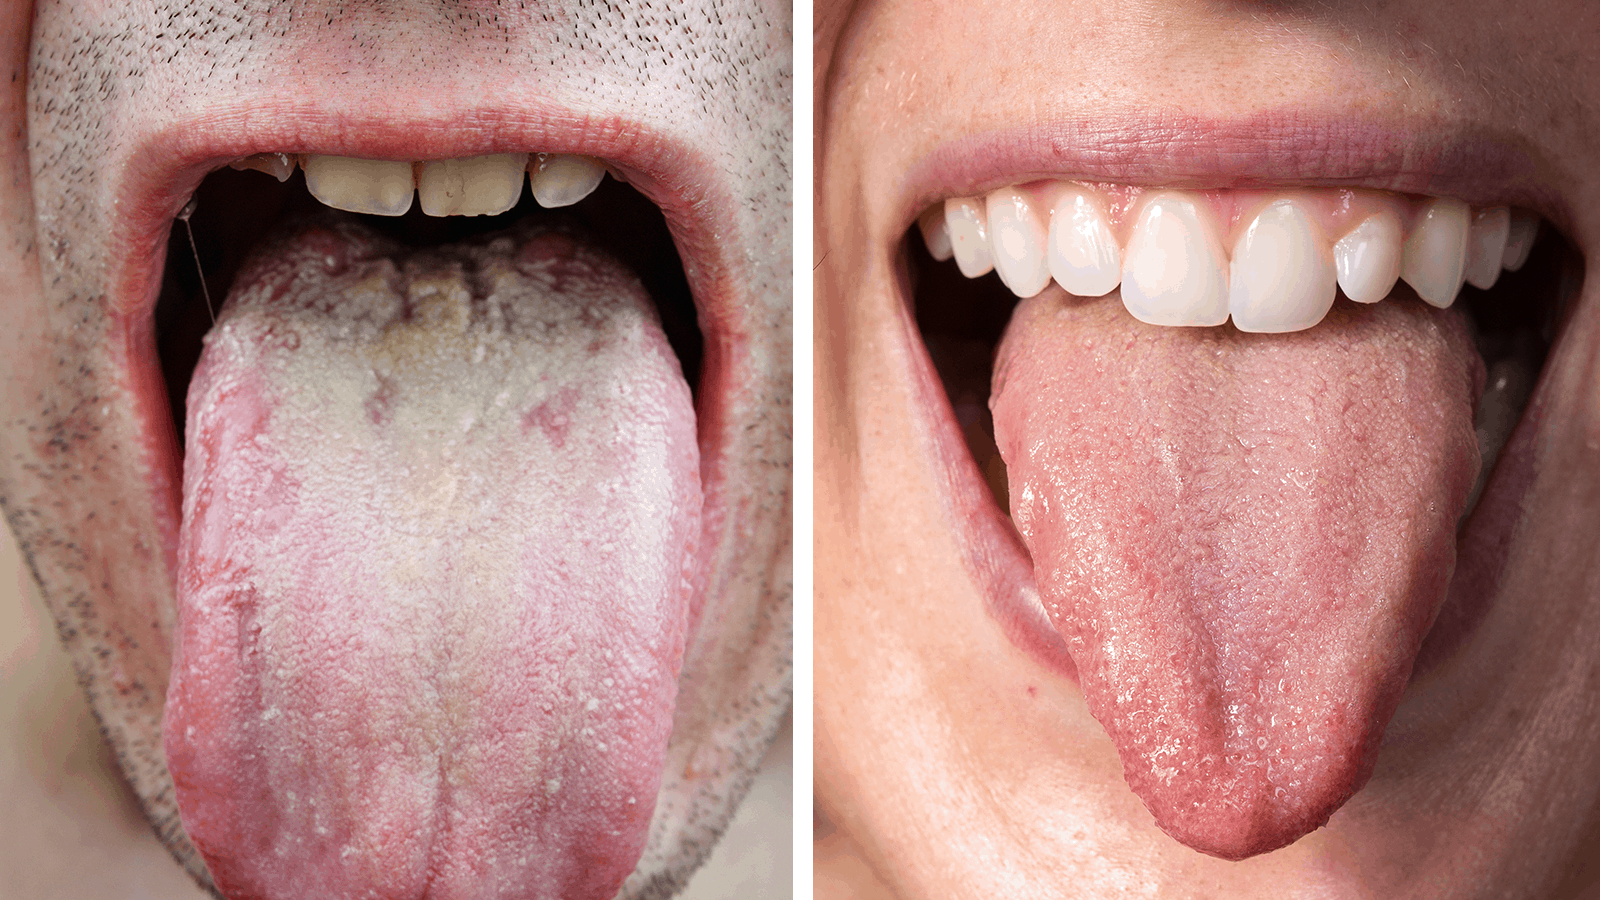 Researchers Explain What The Color Of Your Tongue Says About Your Health